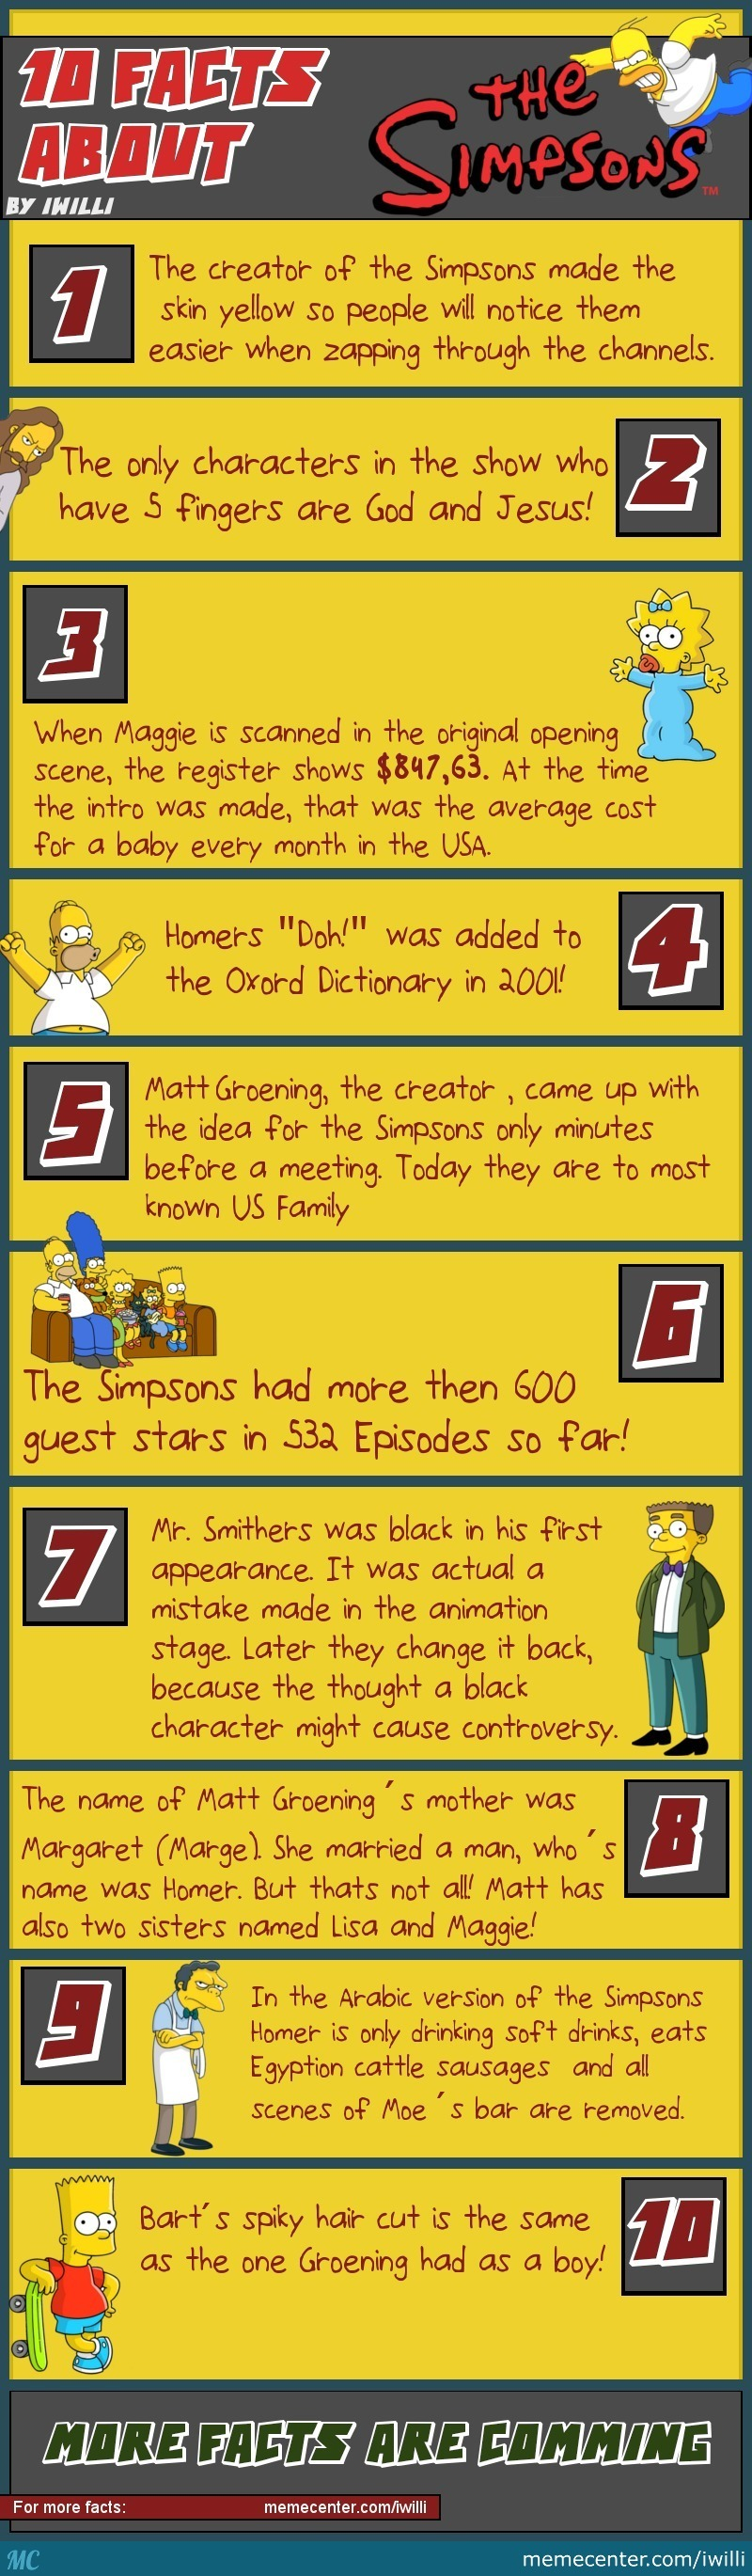 10 Facts About: The Simpsons